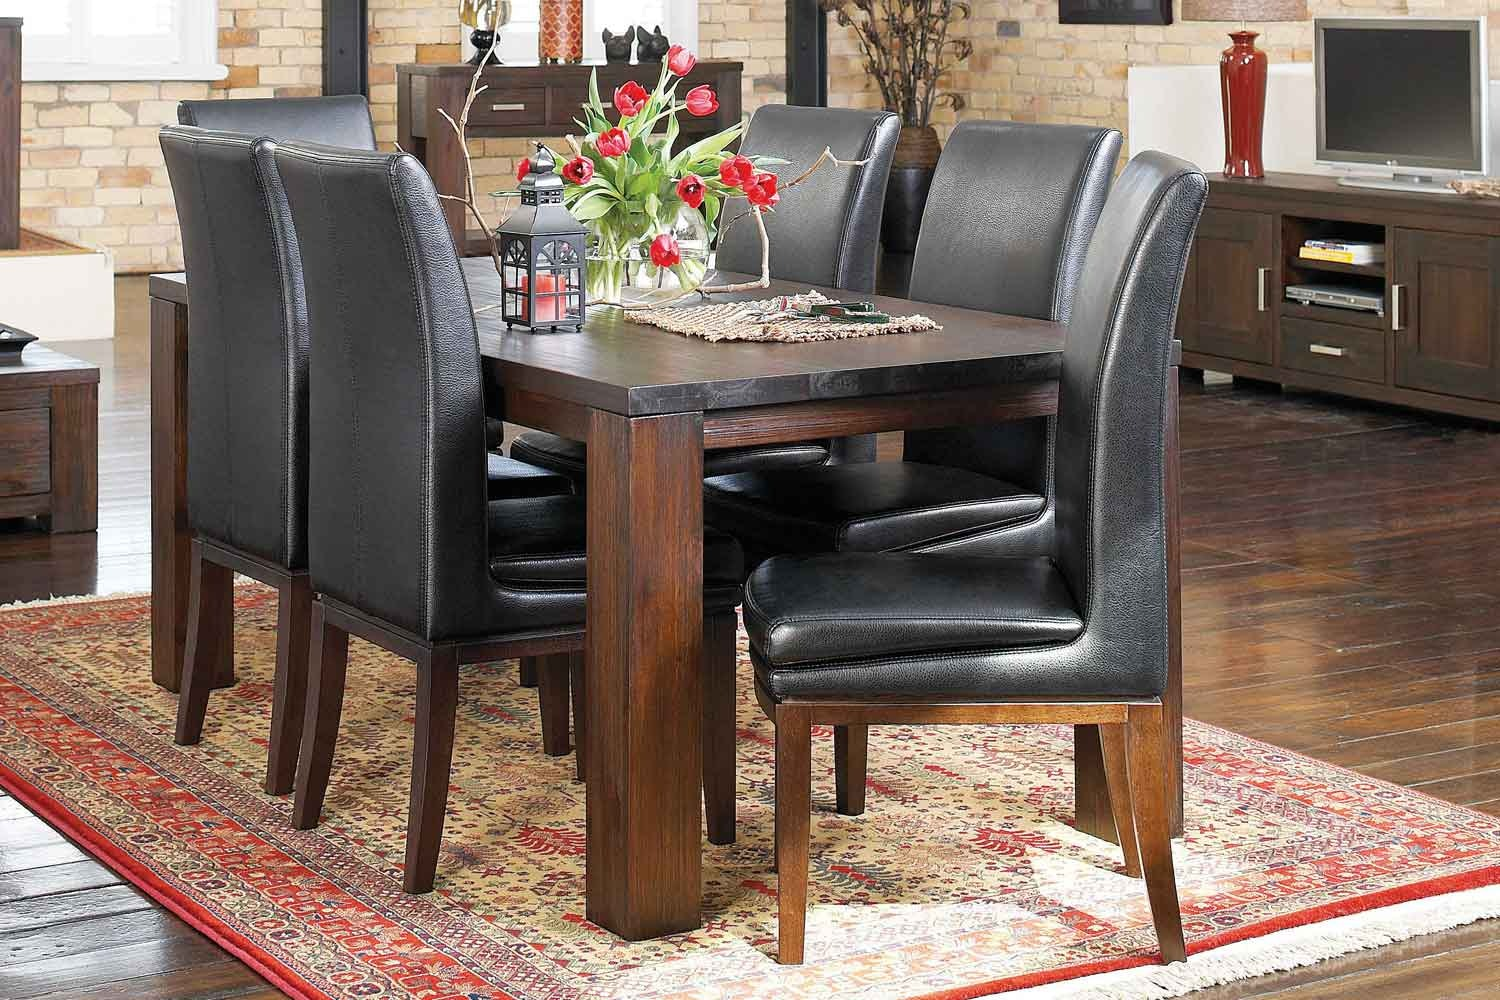 Rustic Heirloom 7 Piece Dining Suite by John Young Furniture